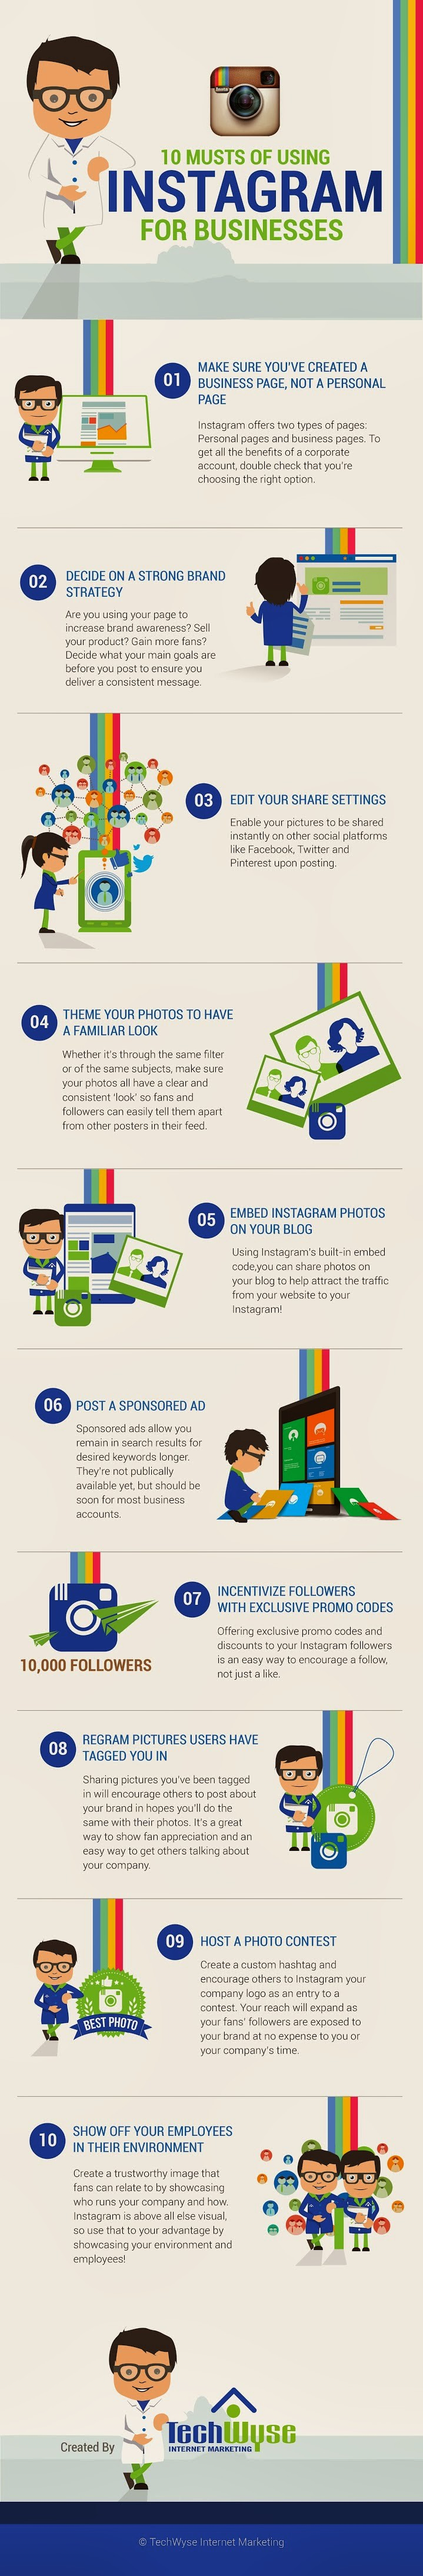 10 Musts of Using Instagram for Businesses